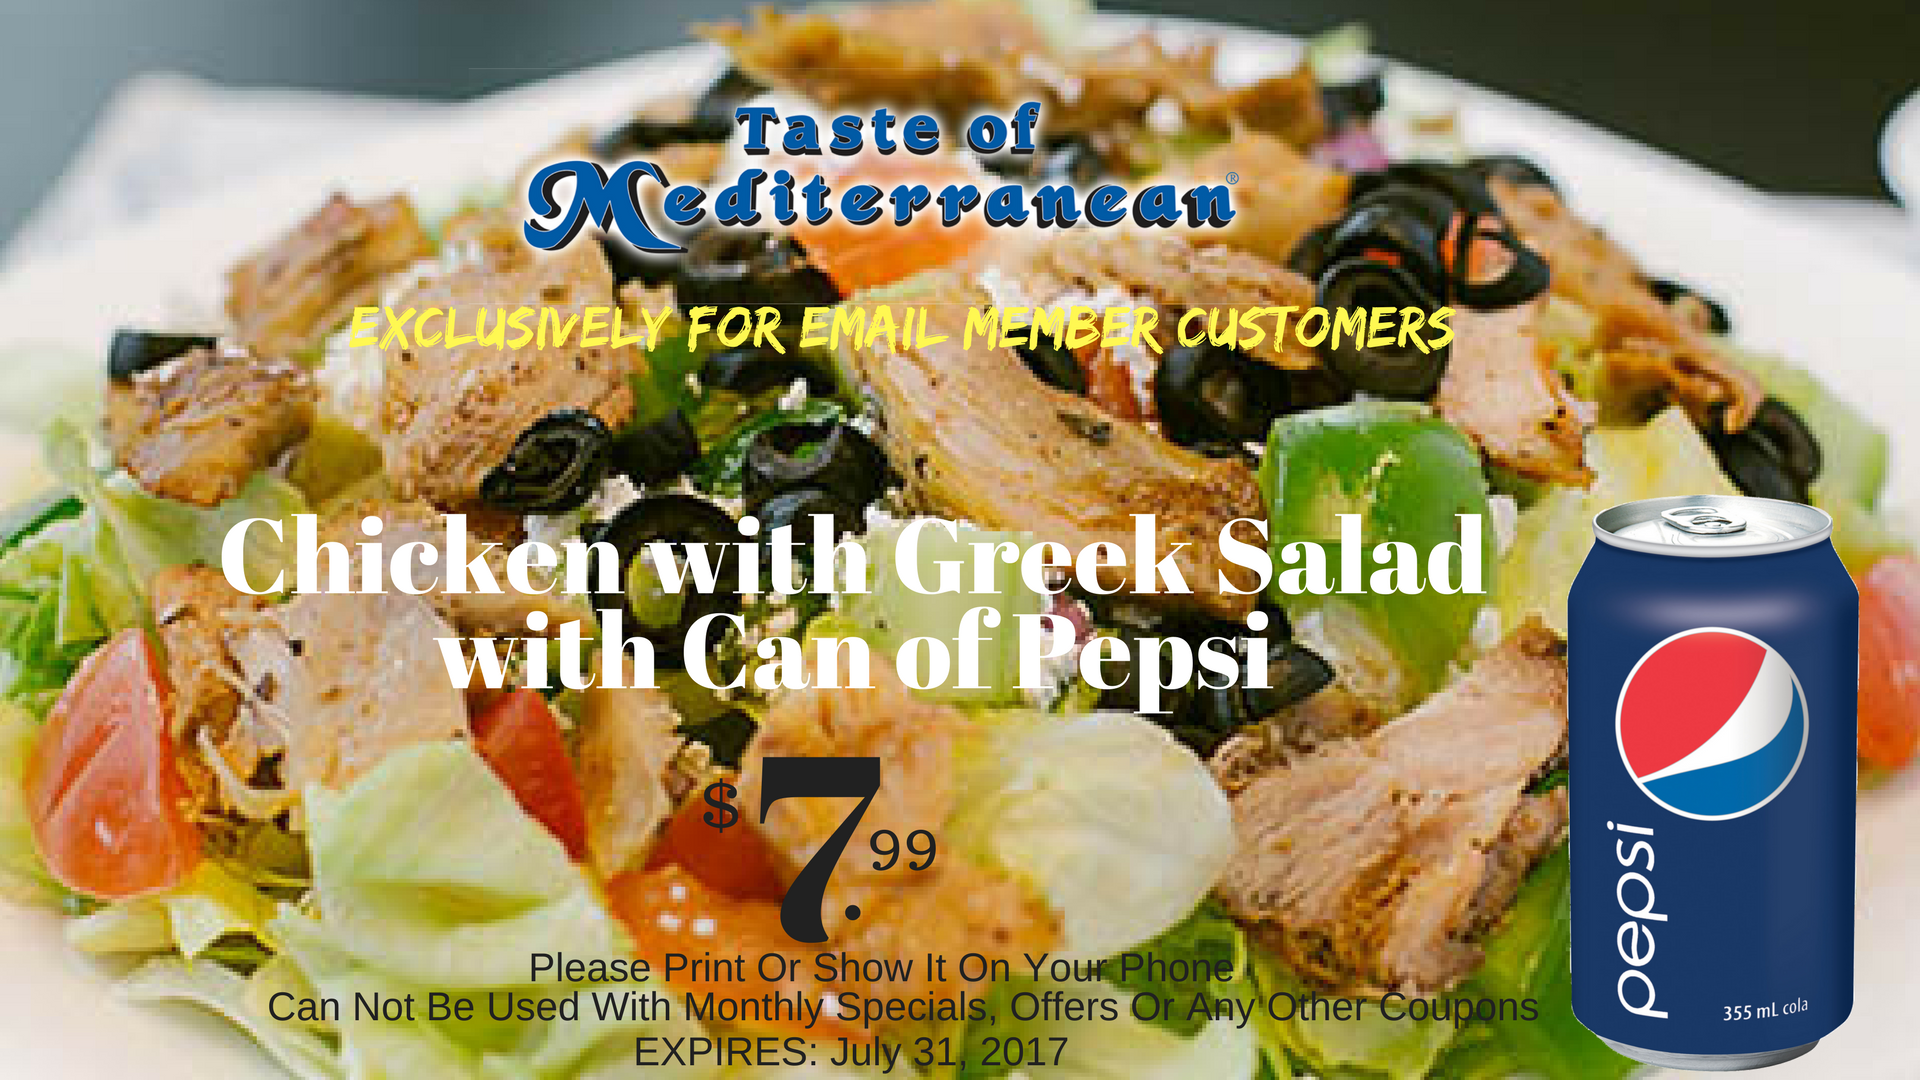 Chicken with Greek Salad coupon